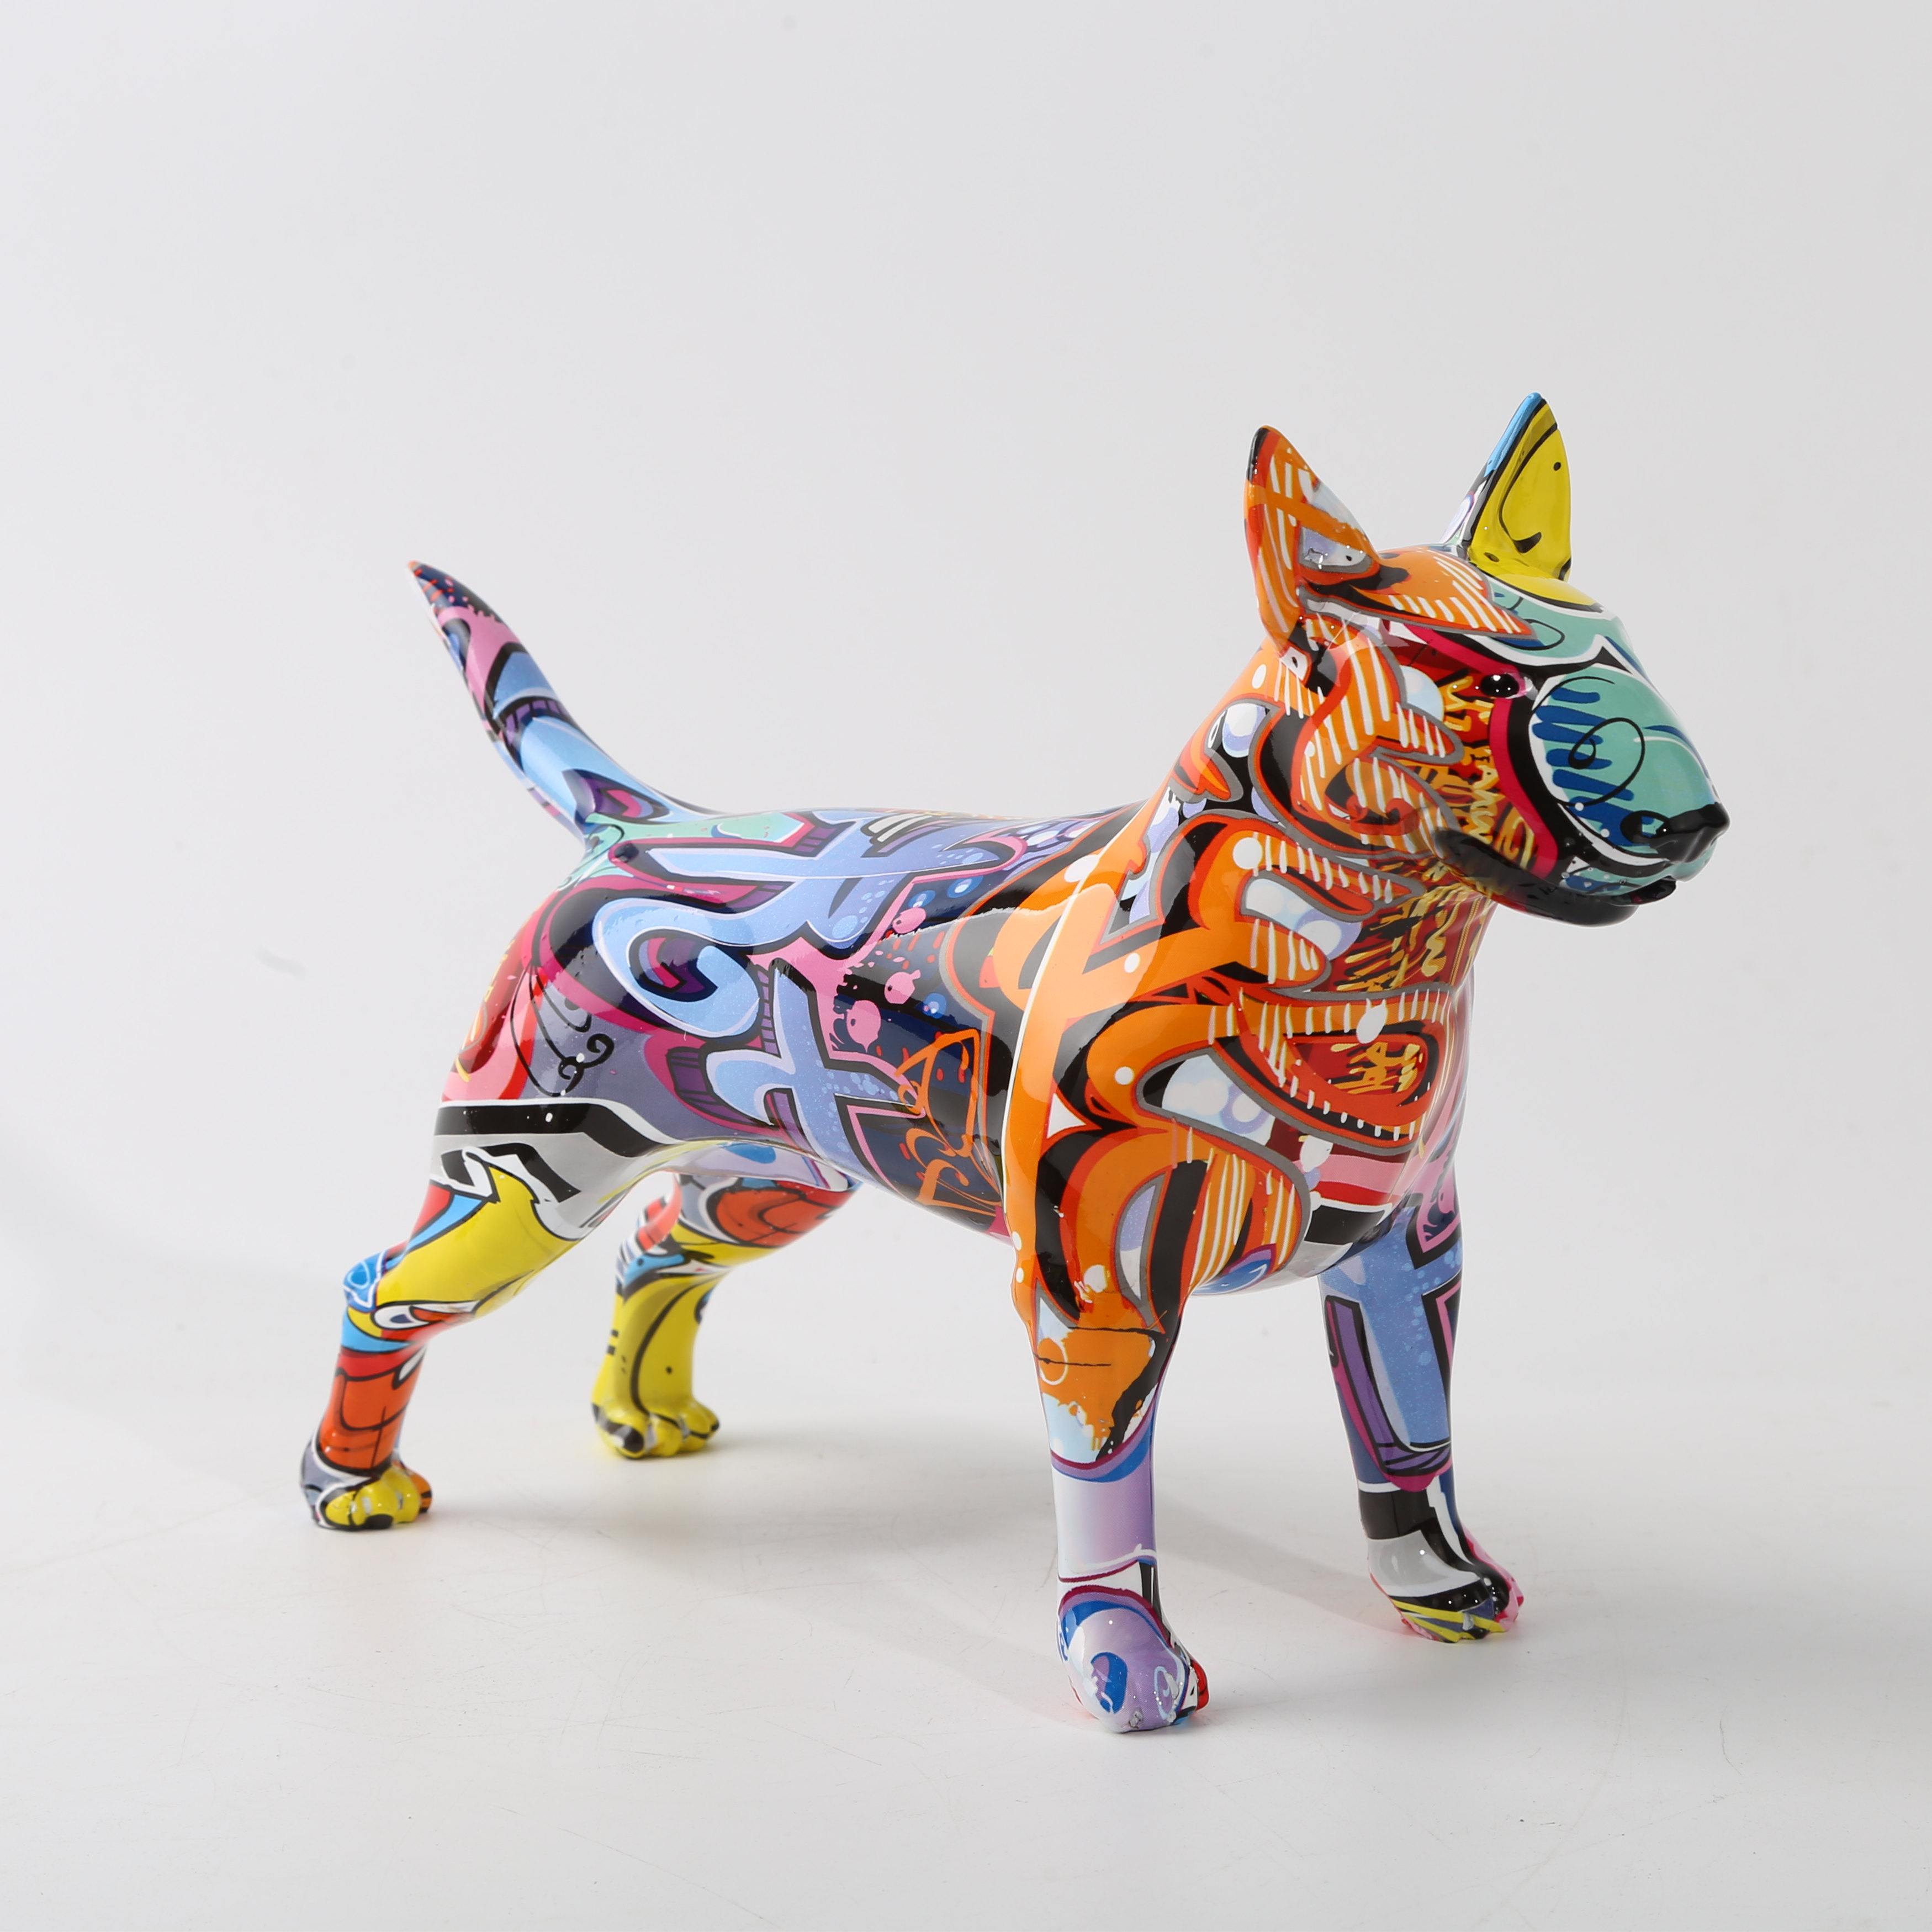 Art Colorful Creative Bull terrier Small English Resin Dog Crafts Home Decoration Color Modern Simple Office Desktop Craft